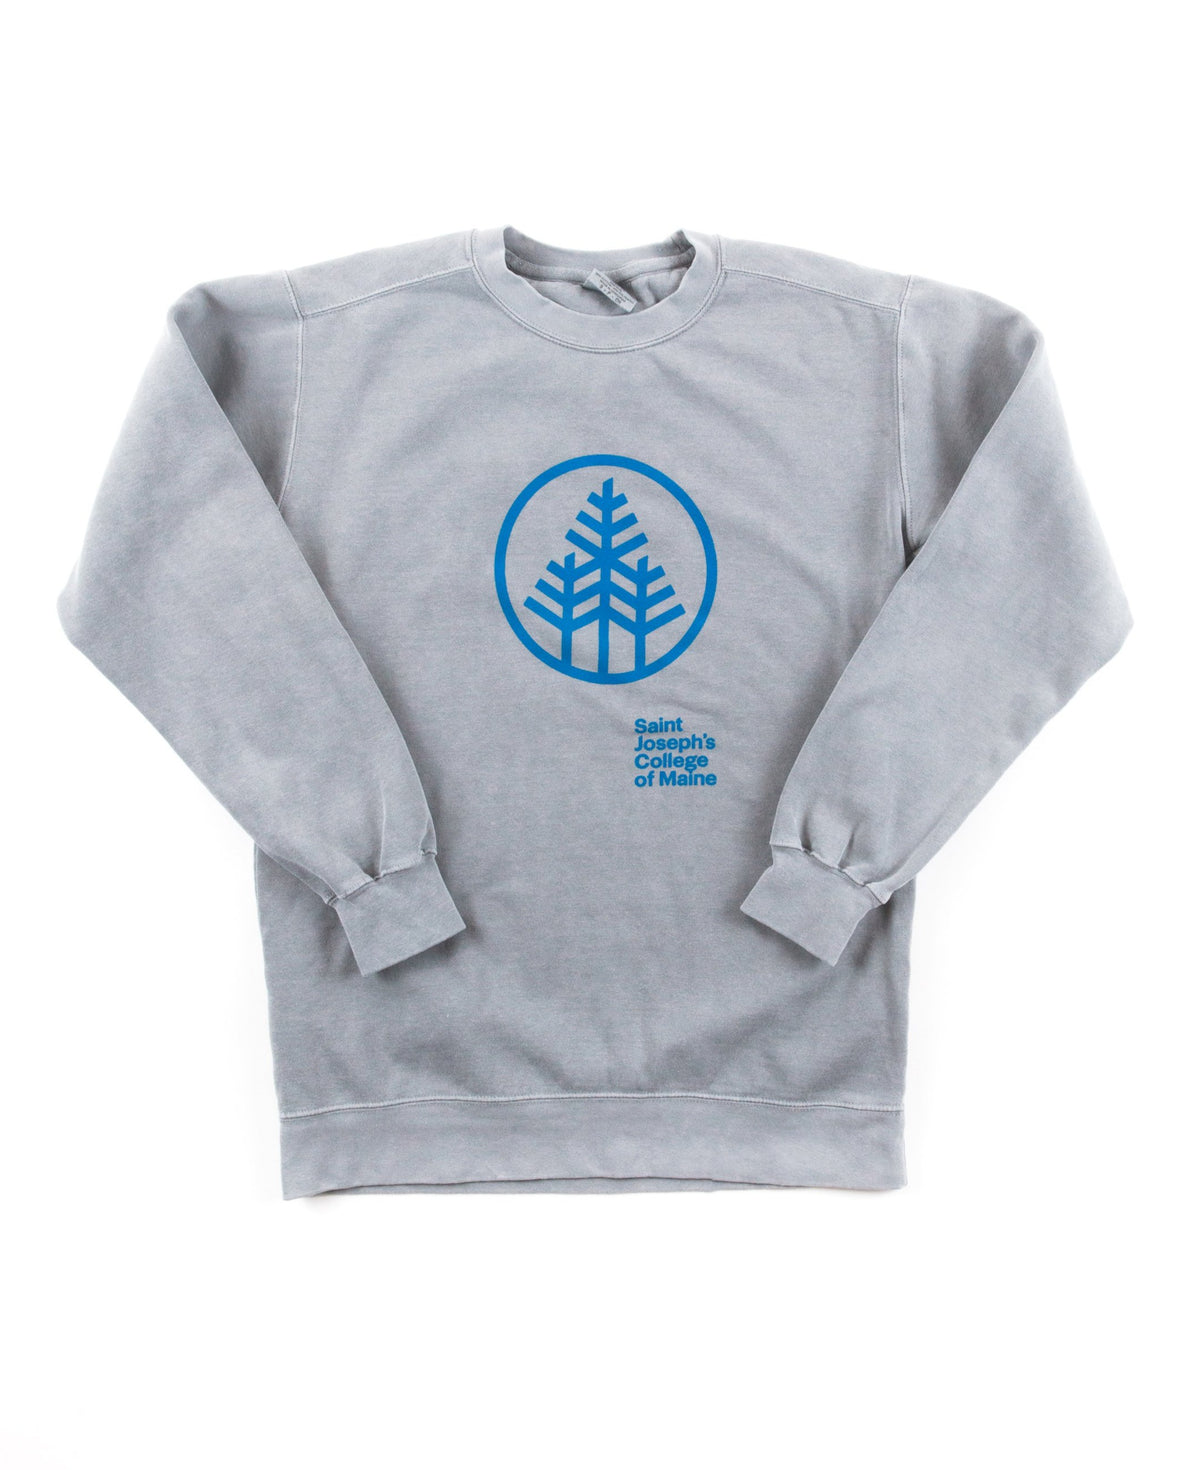 Grey Crew Neck Sweater with Tree Stamp